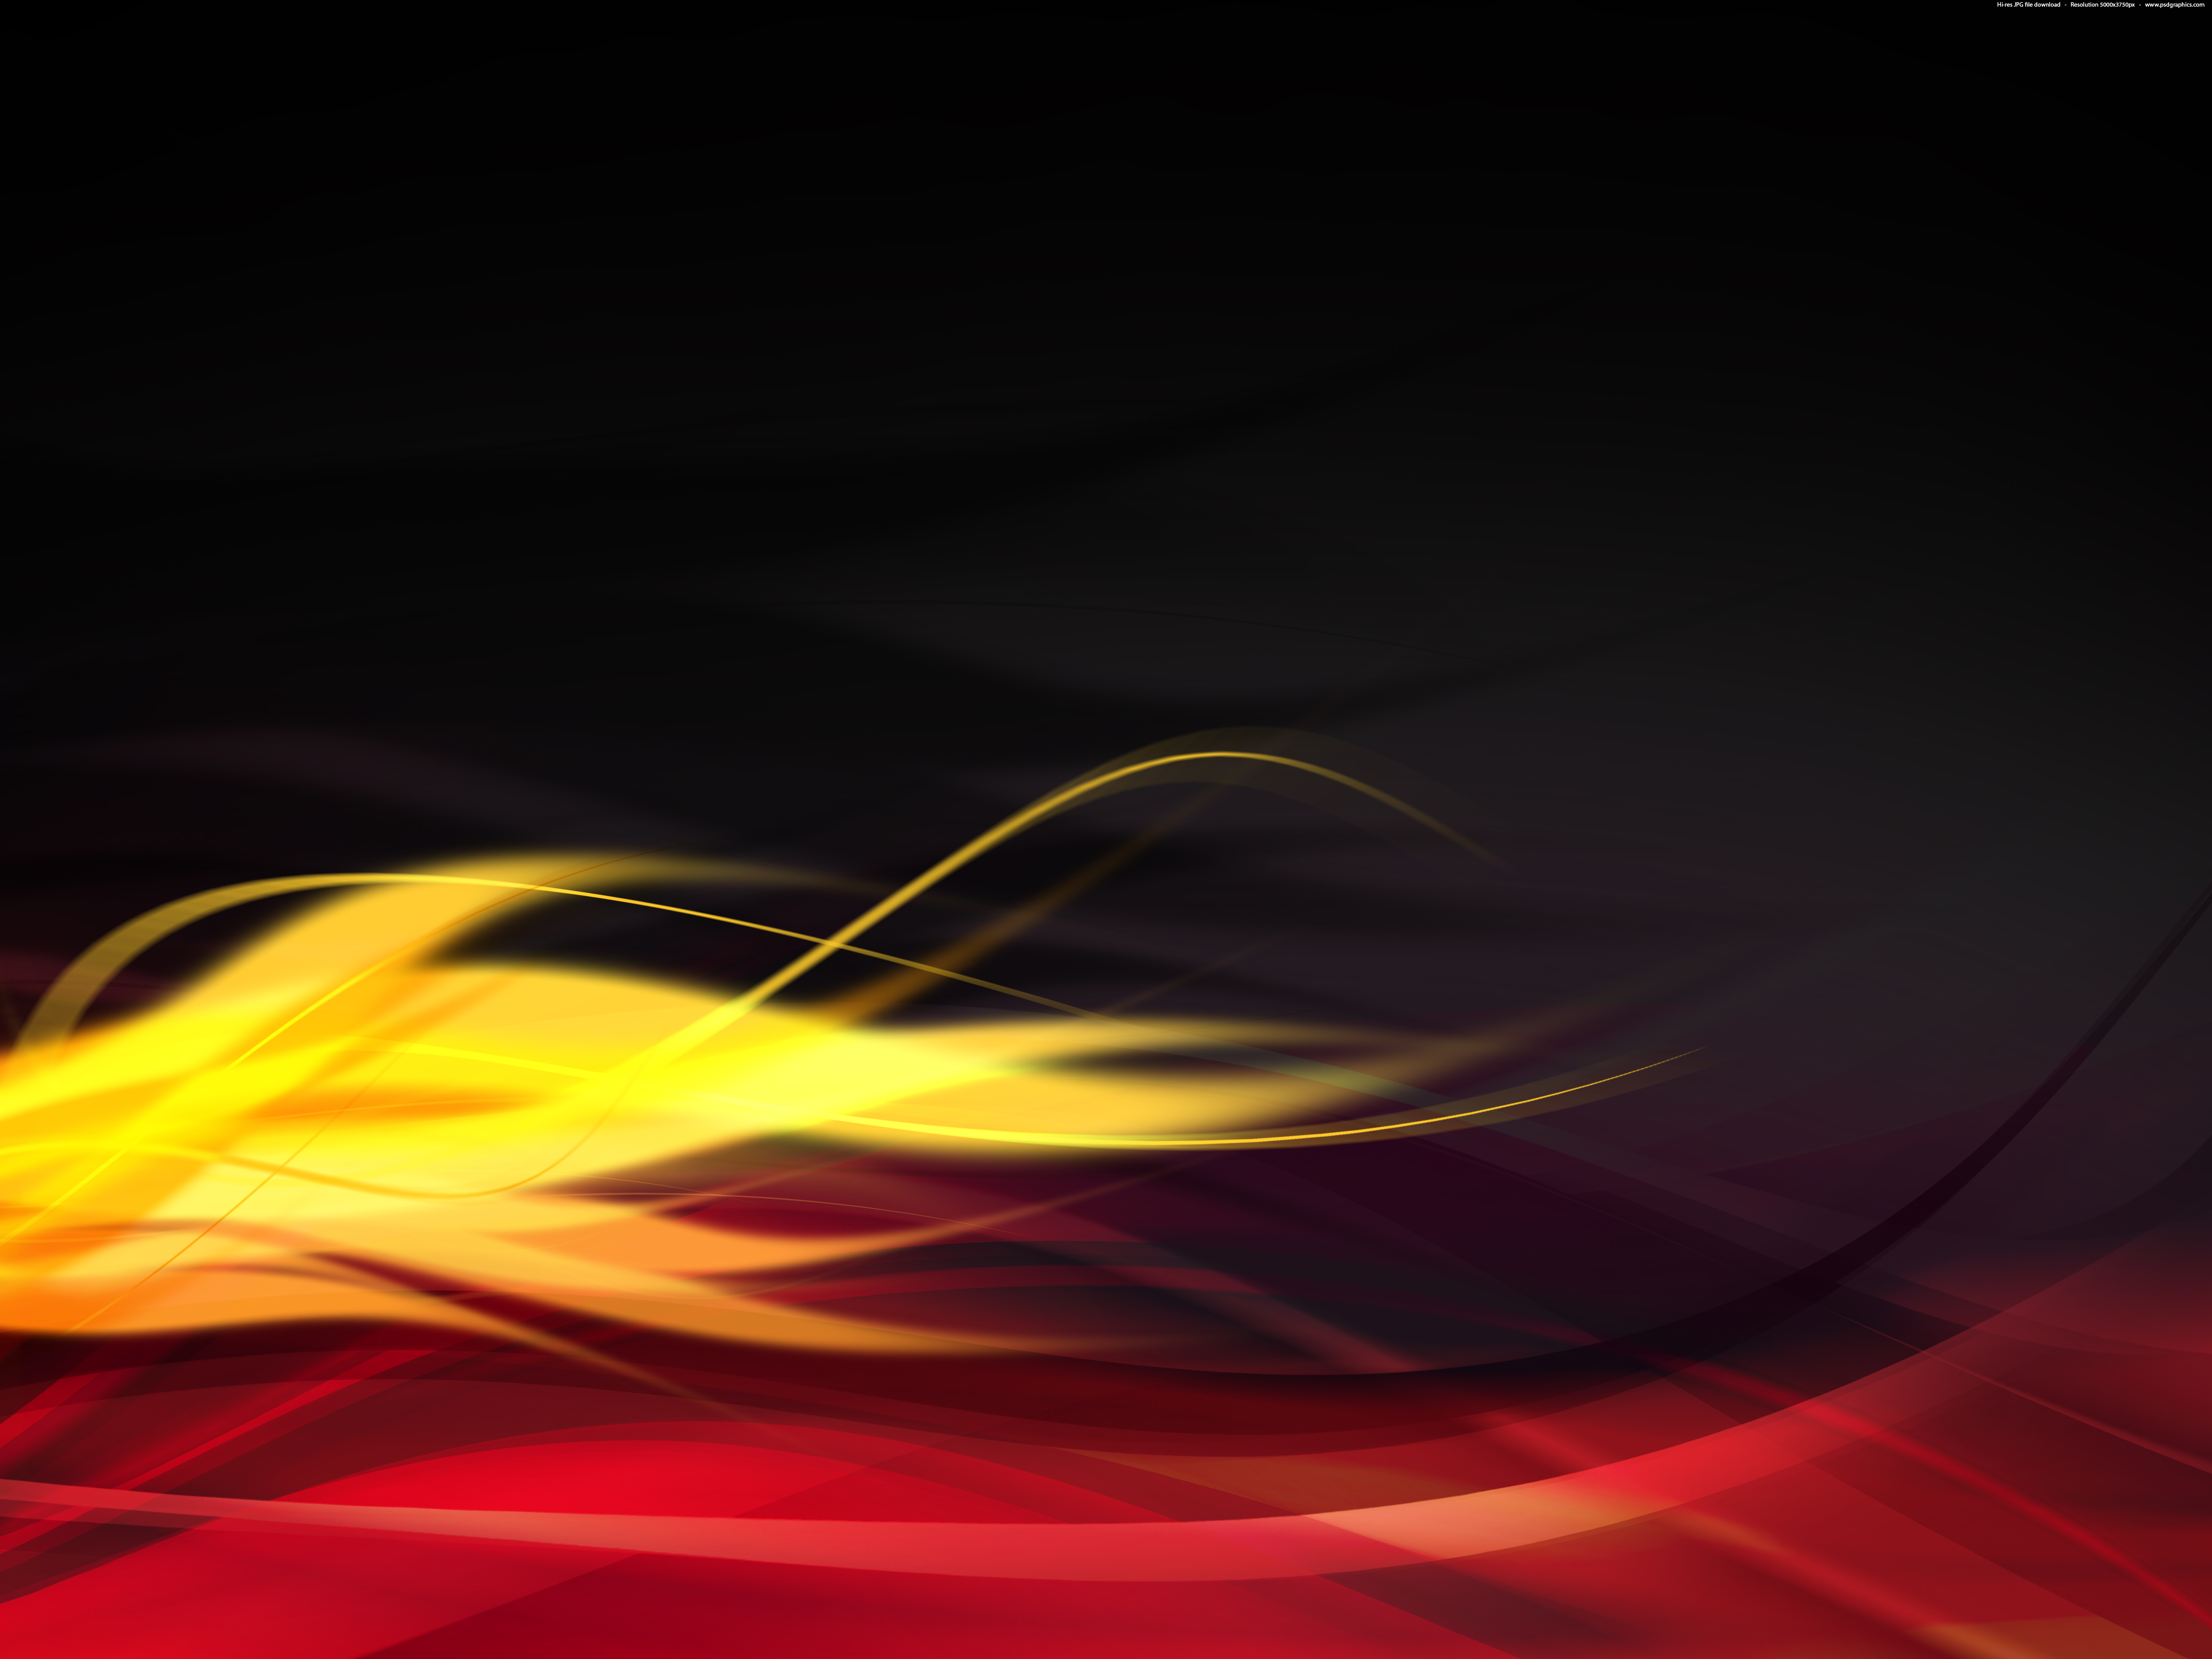 photoshop flame background burning flames illustration psd flame icon 5000x3750